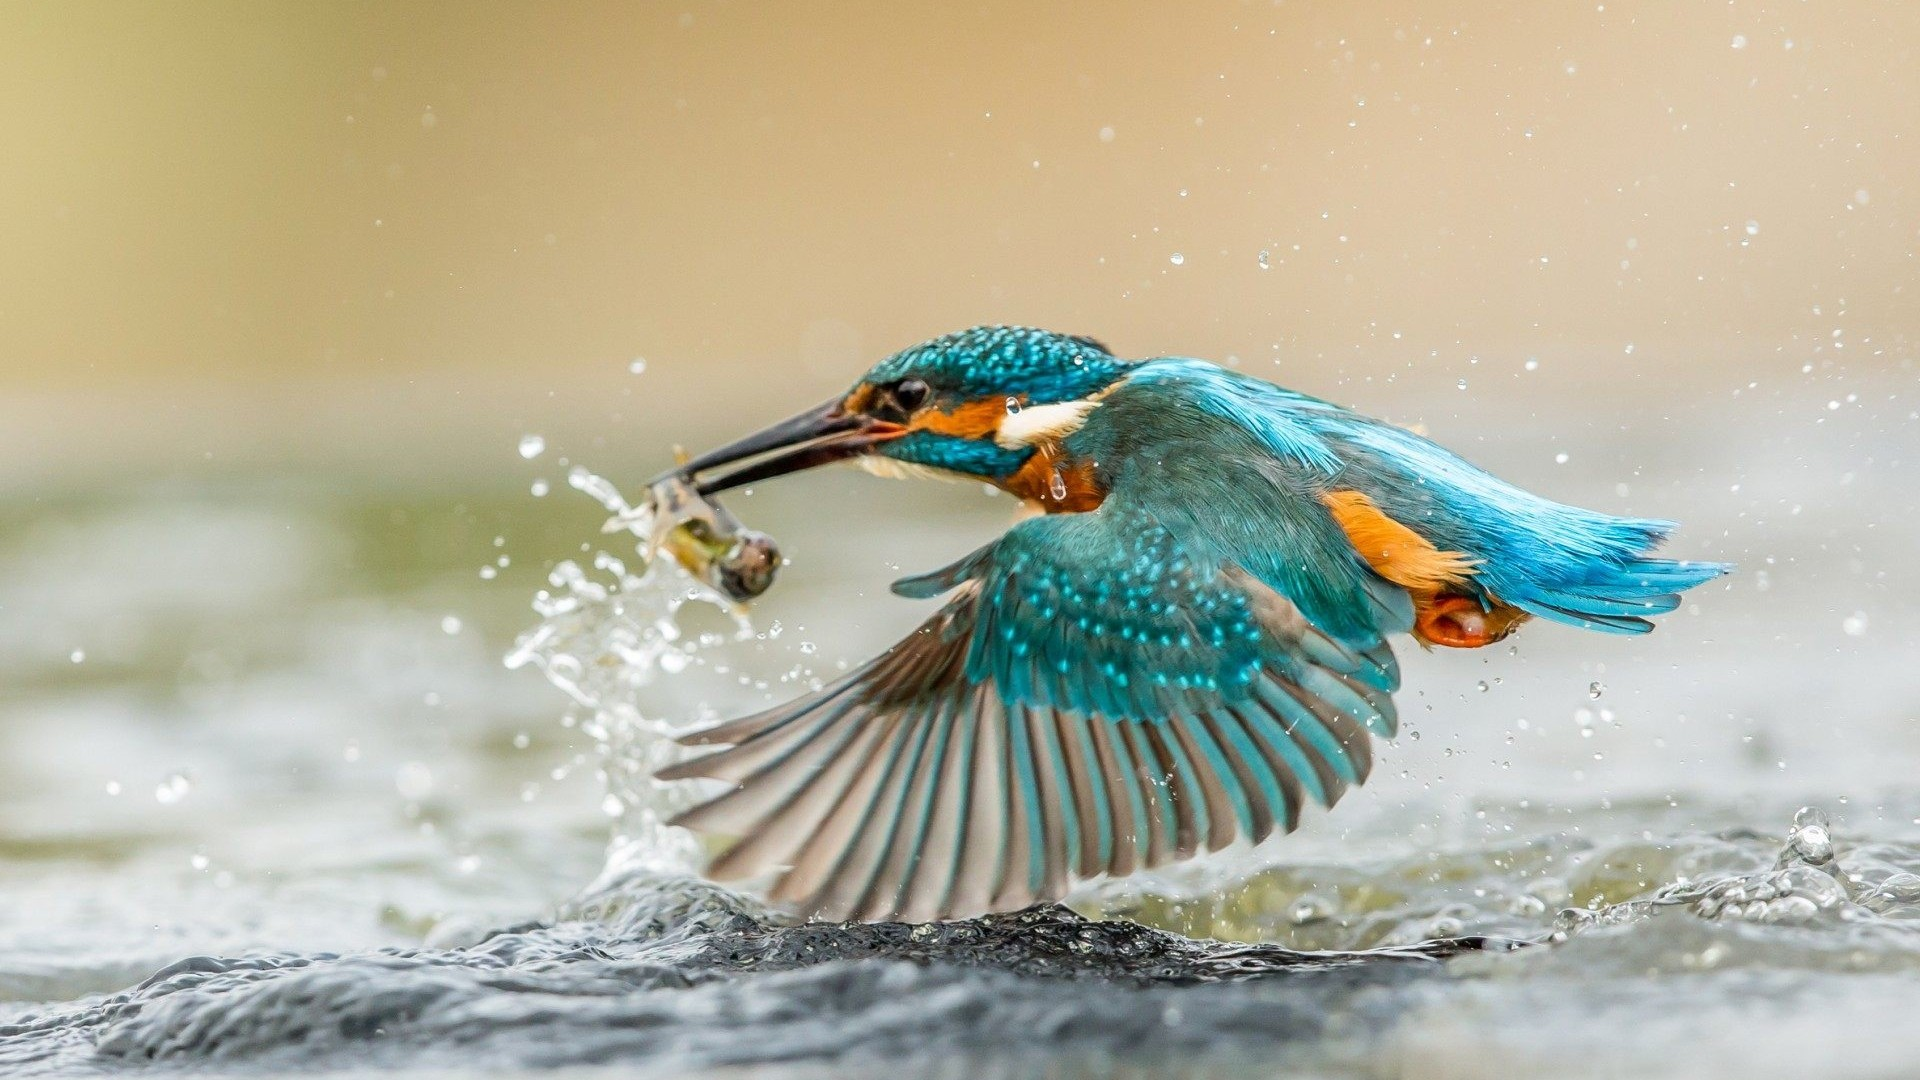 1920x1080 Kingfisher bird hunting fish wallpaper () Need #iPhone #6S #Plus # Wallpaper/ #Background for #IPhone6SPlus? Follow iPhone 6S Plus 3Wallpap…